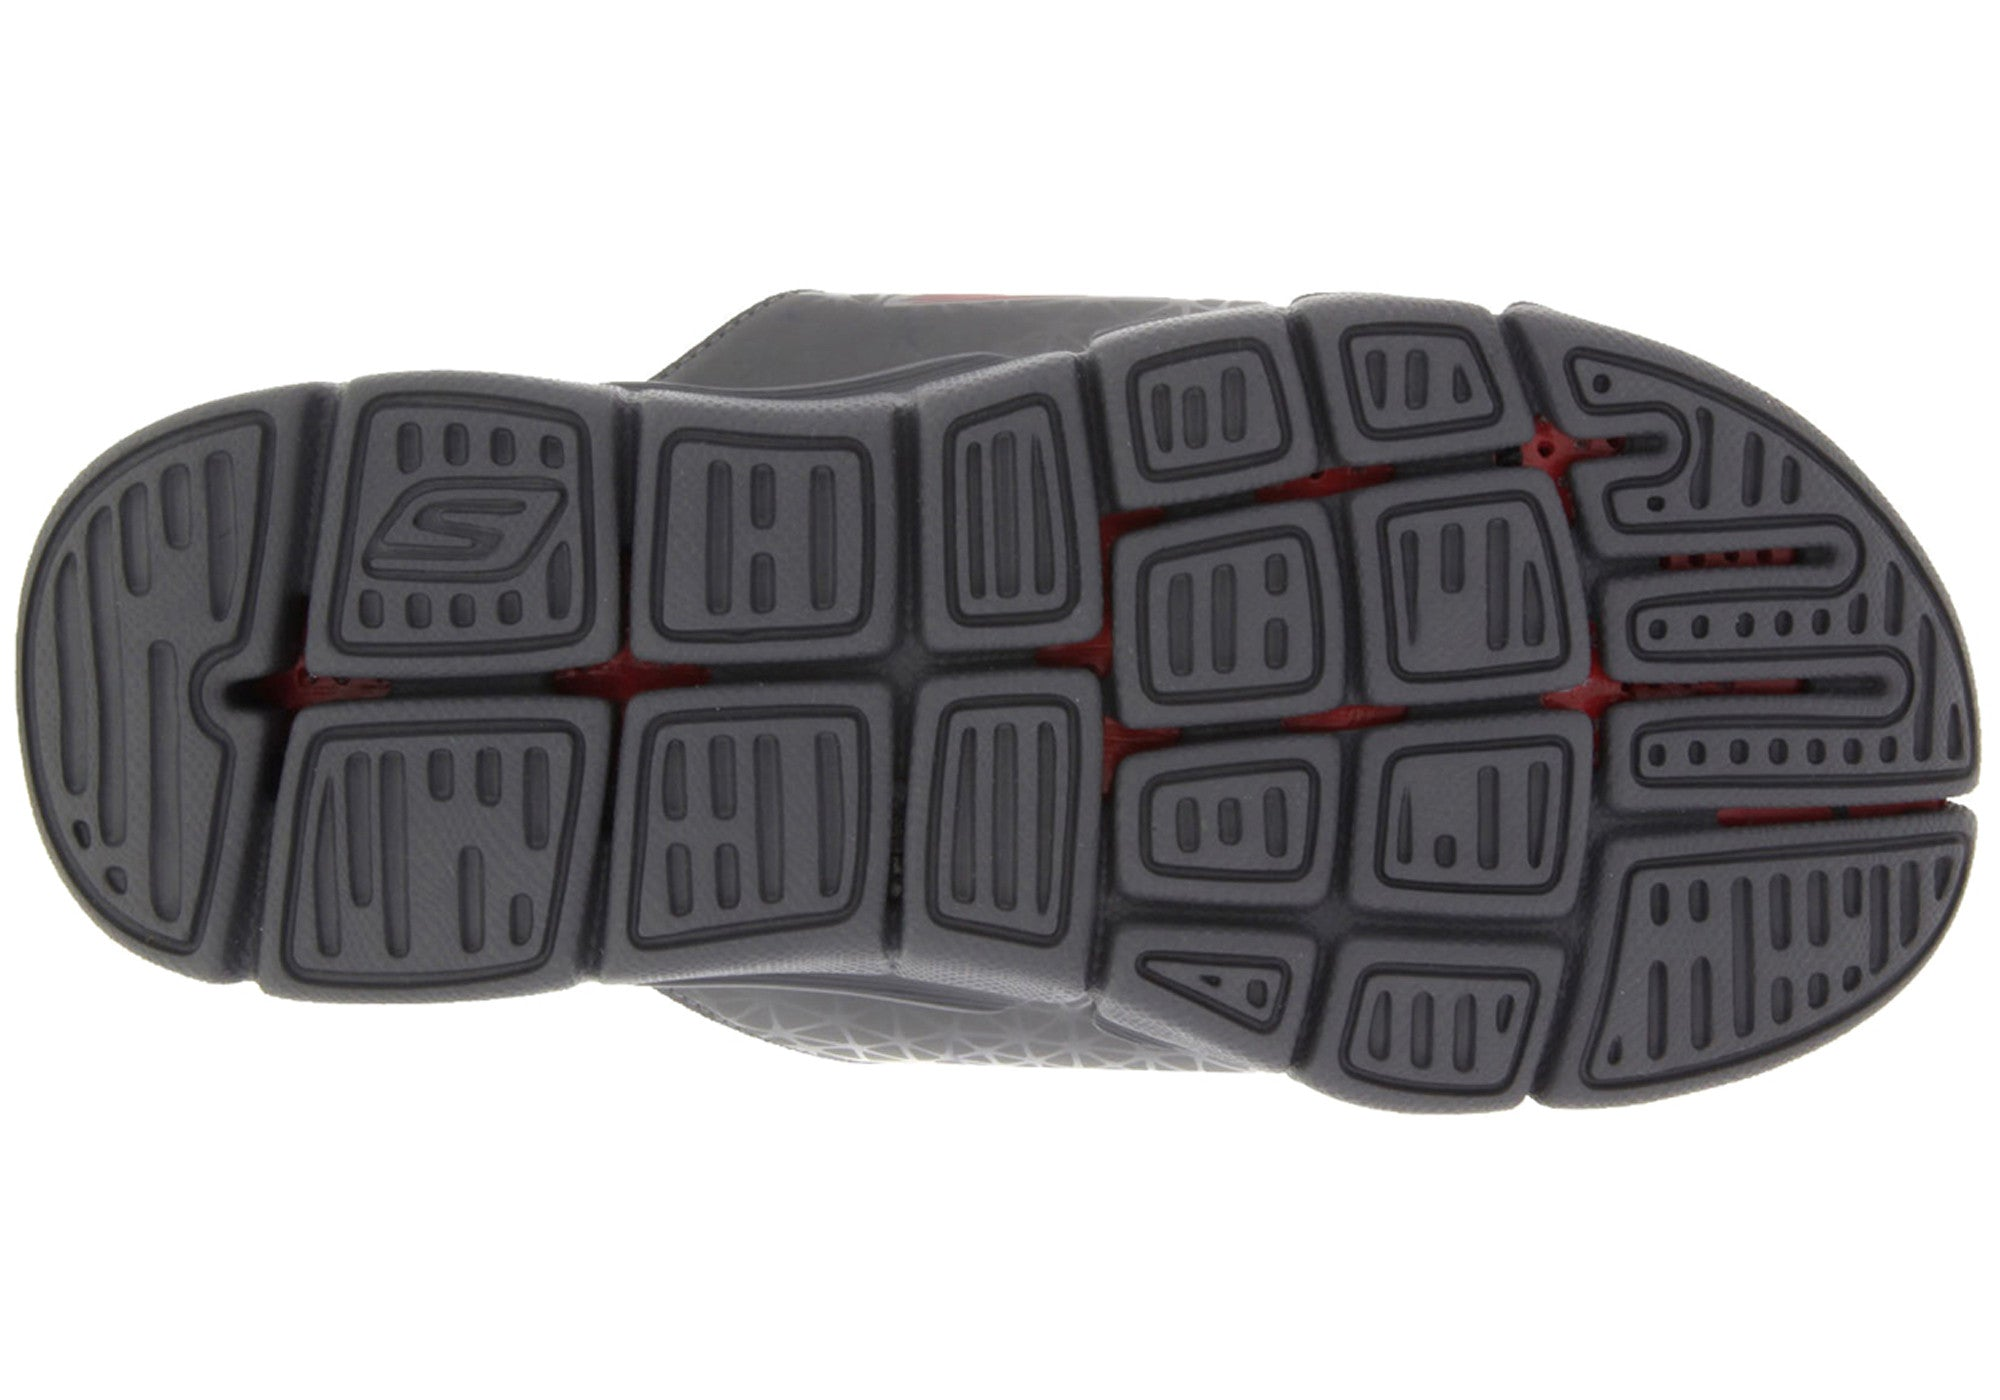 Skechers GObionic S Mens Comfortable Lightweight Slide